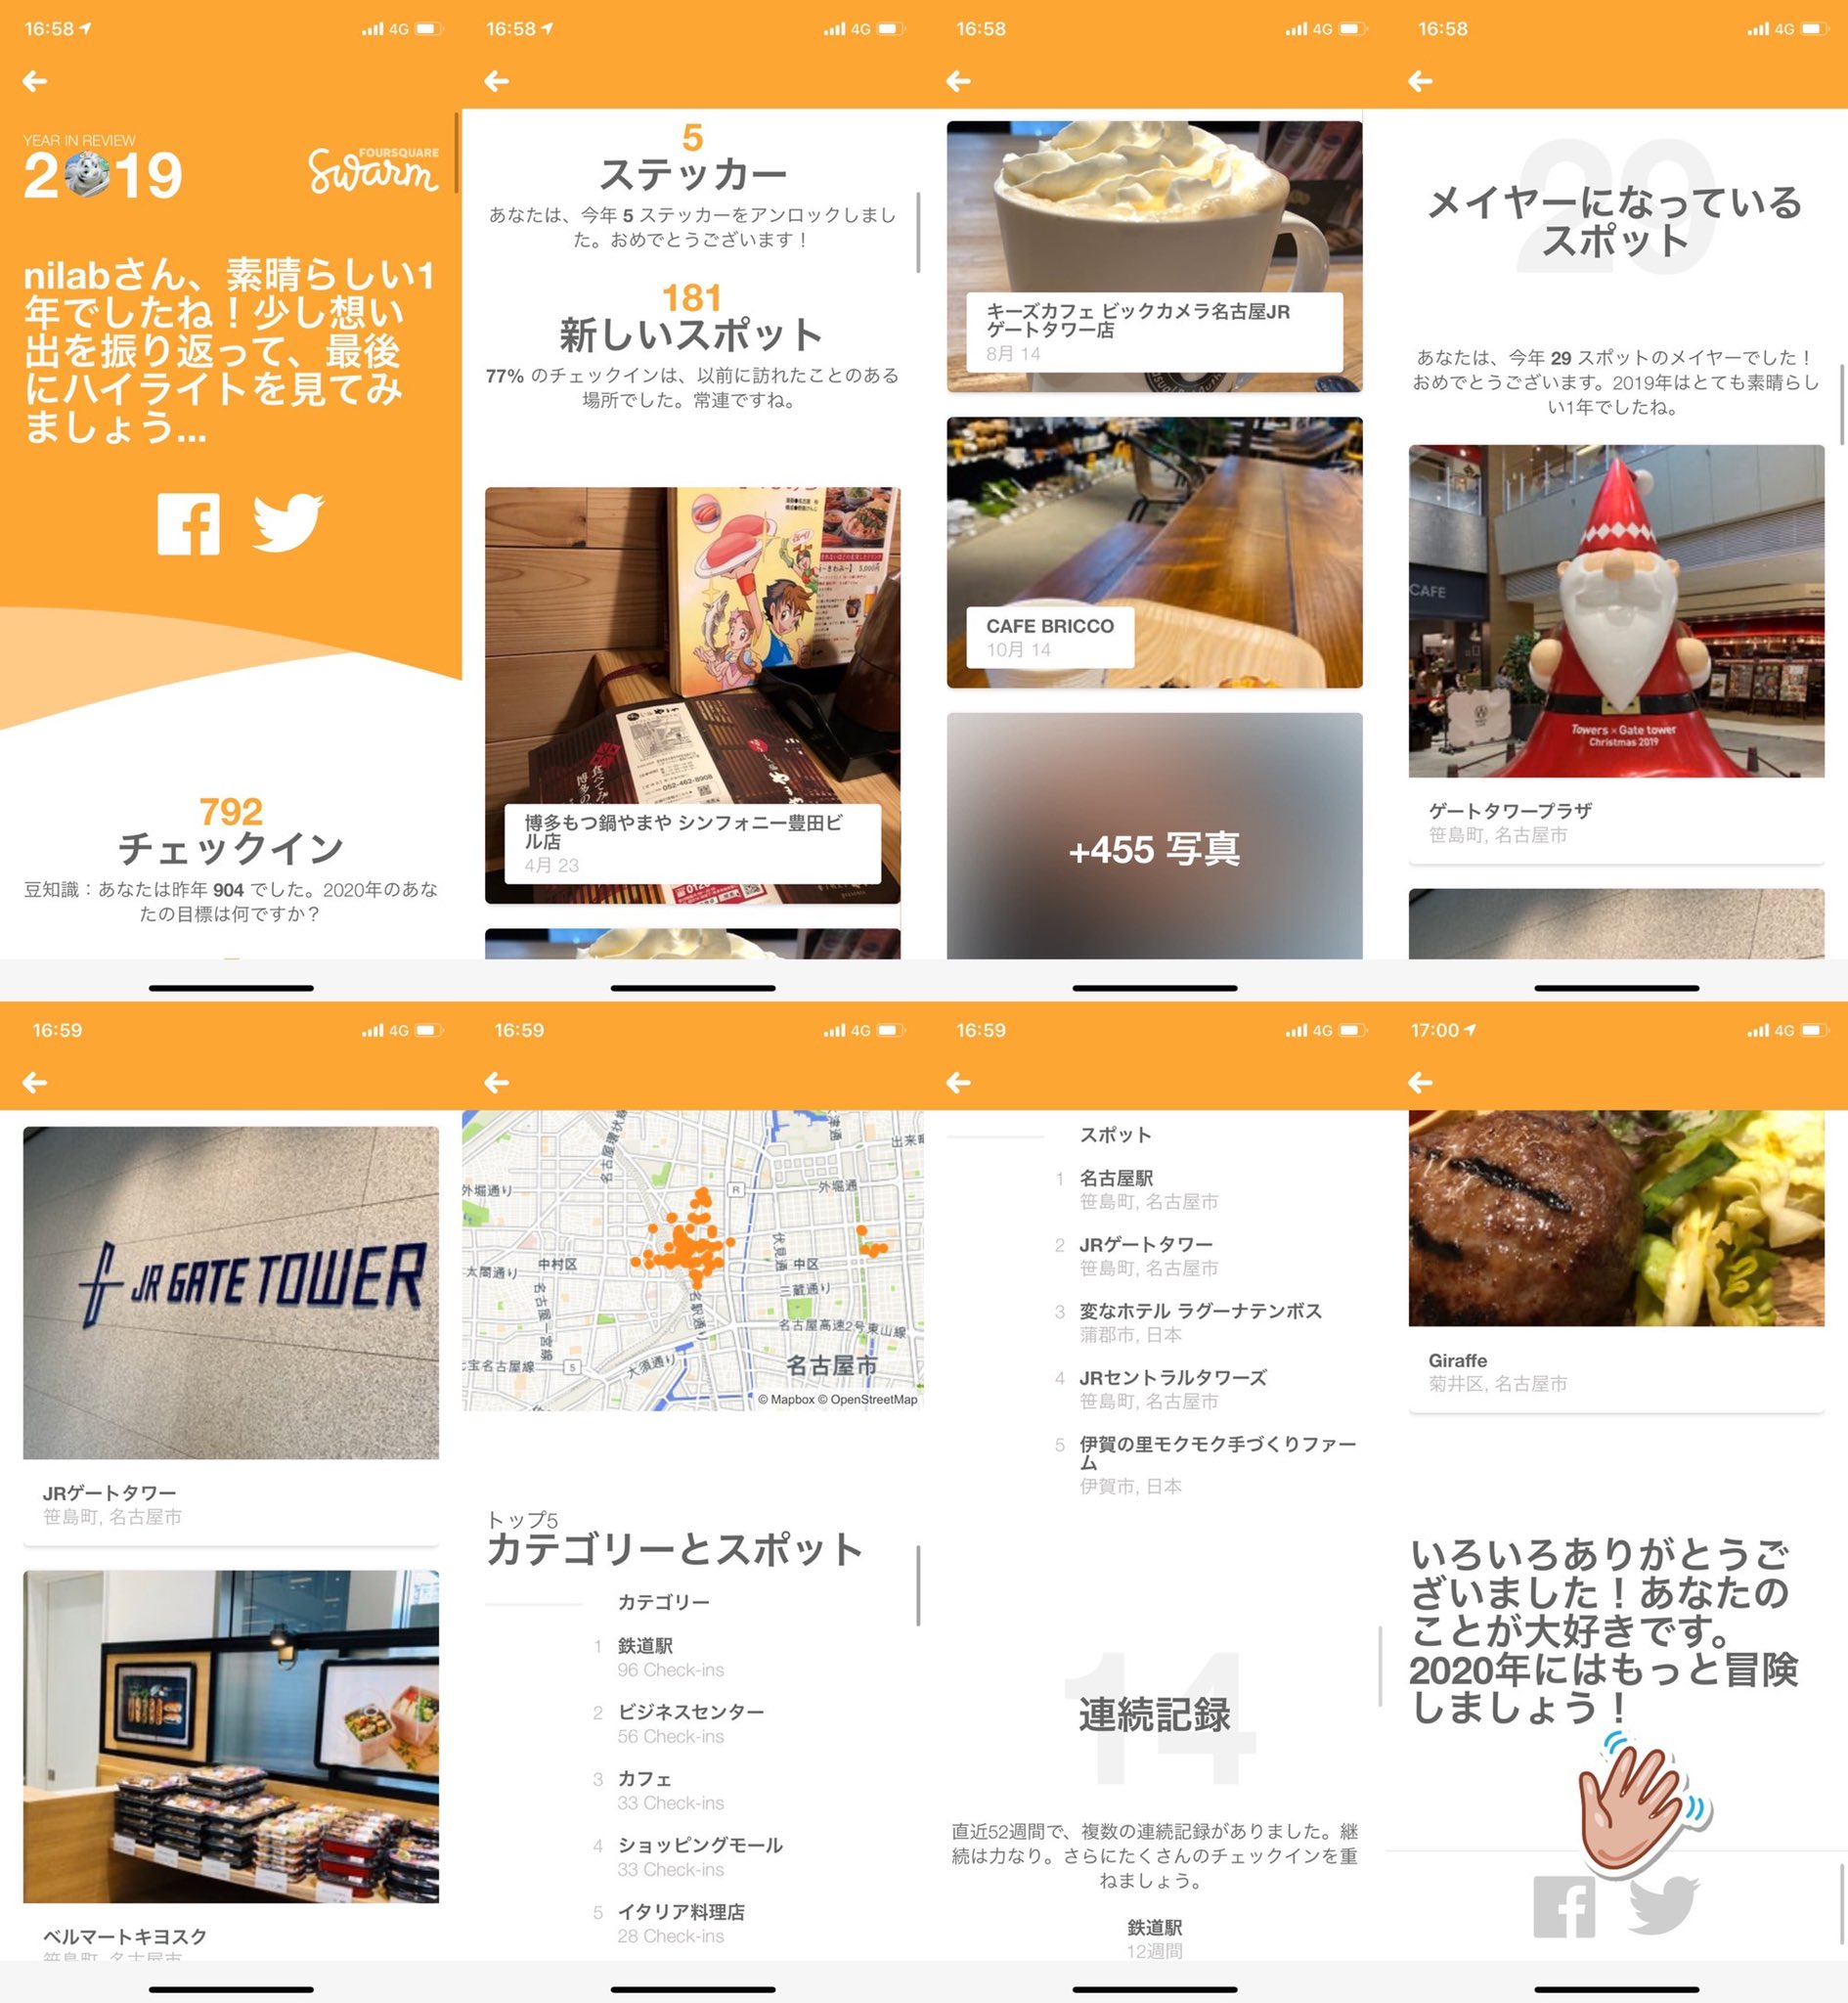 Swarm by Foursquare 2019年のチェックイン記録まとめ。  Check out my 2019 Year in Review from @swarmapp! https://t.co/NpmyI5aRGK https://t.co/nh1aGb9elr